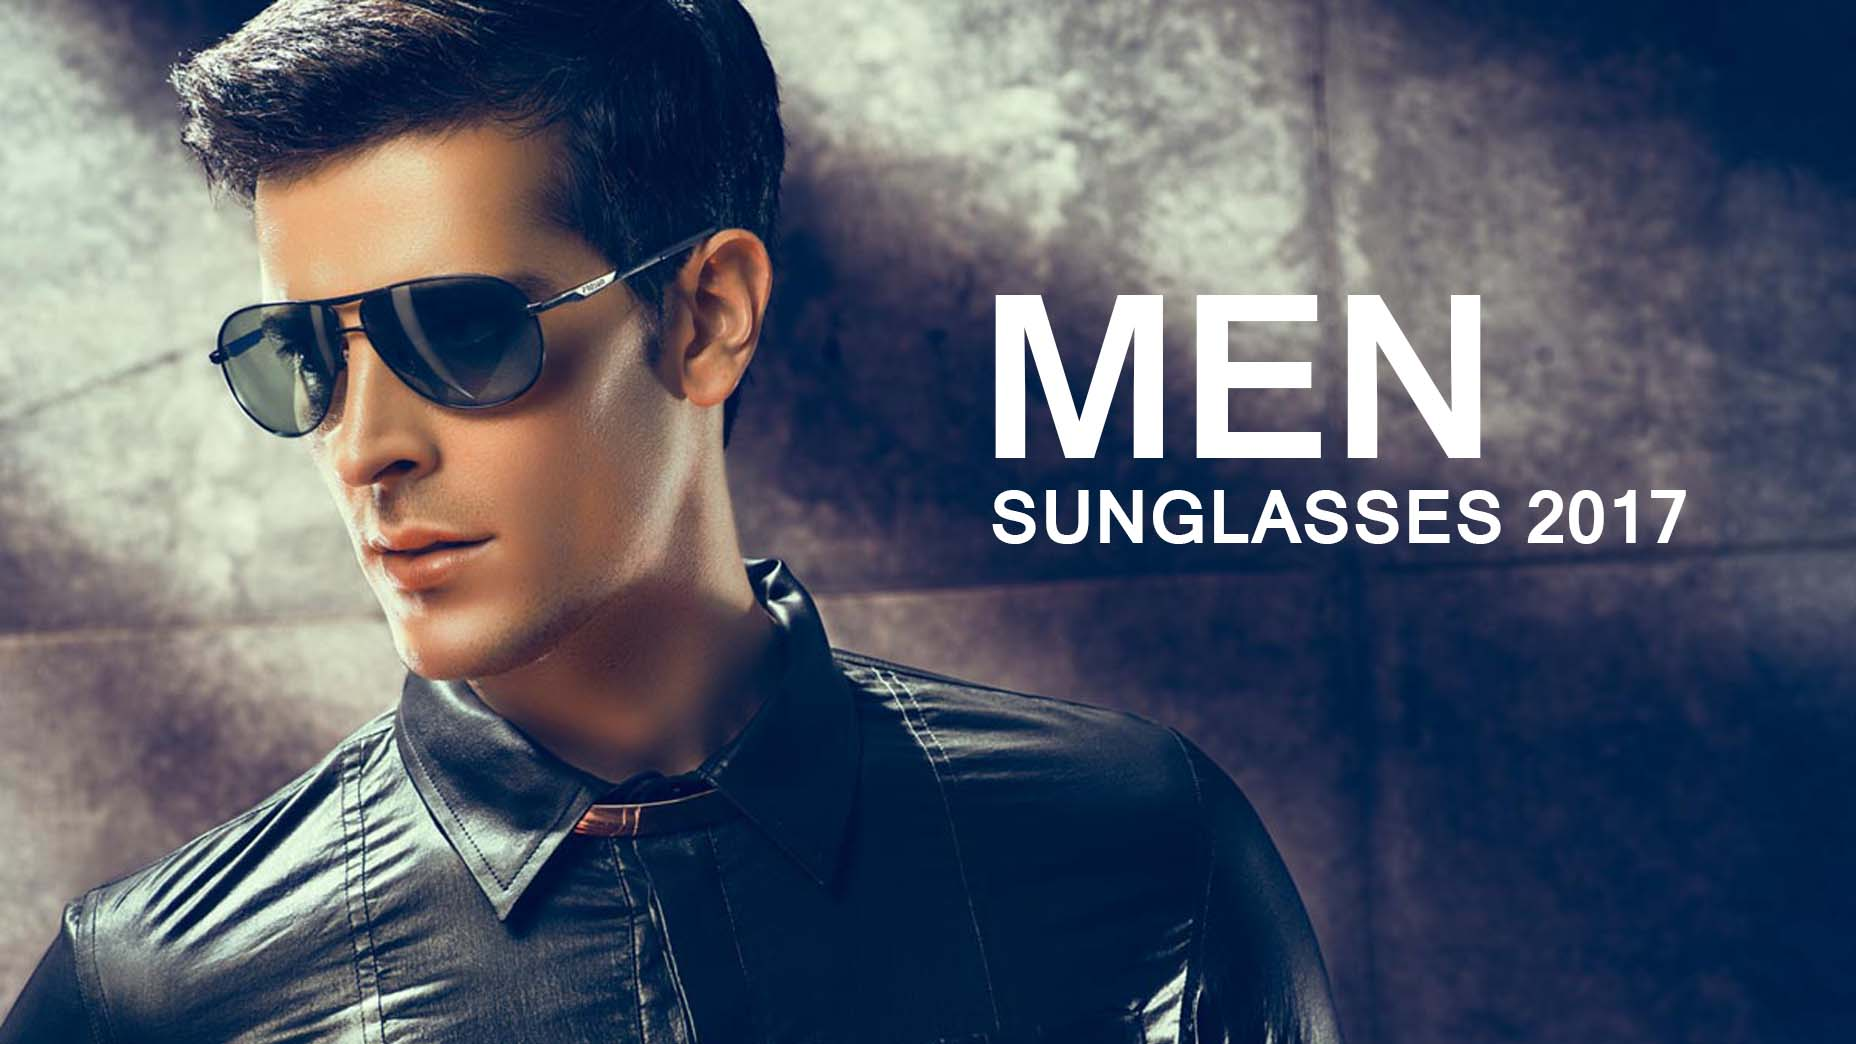 MEN - SUNGLASSES